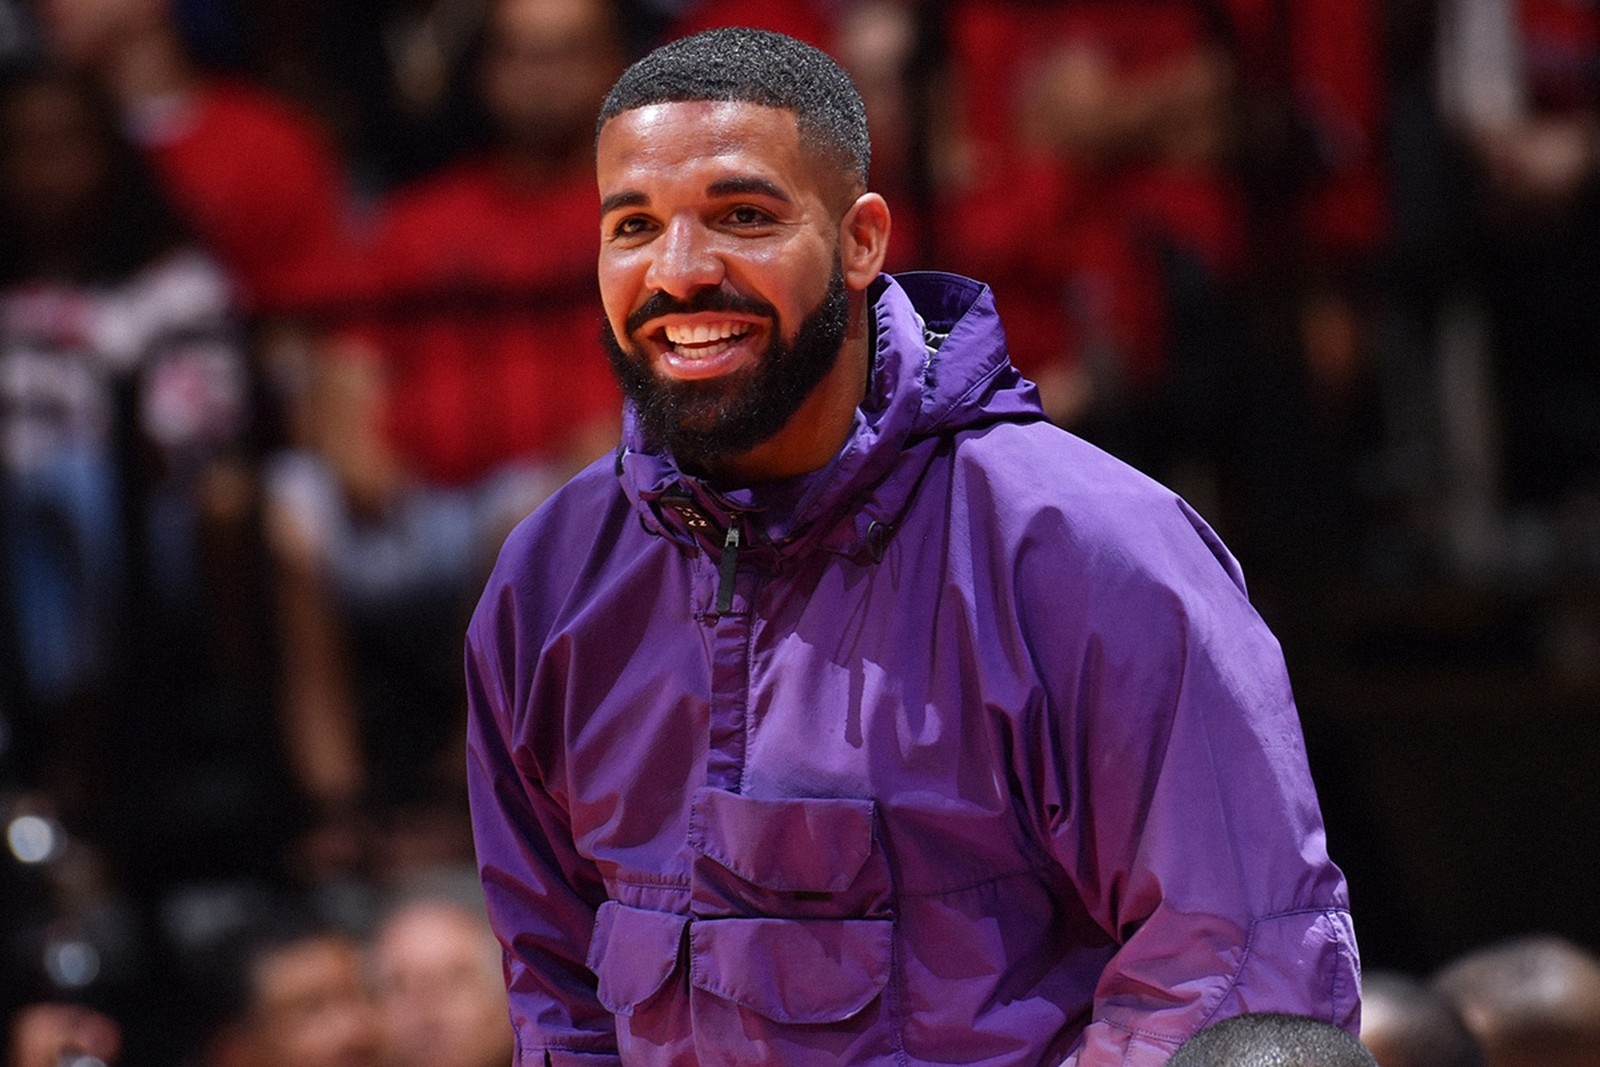 DURING 'SPORTSCENTER,' DID DRAKE REVEAL THE RELEASE DATE FOR 'CLB'?